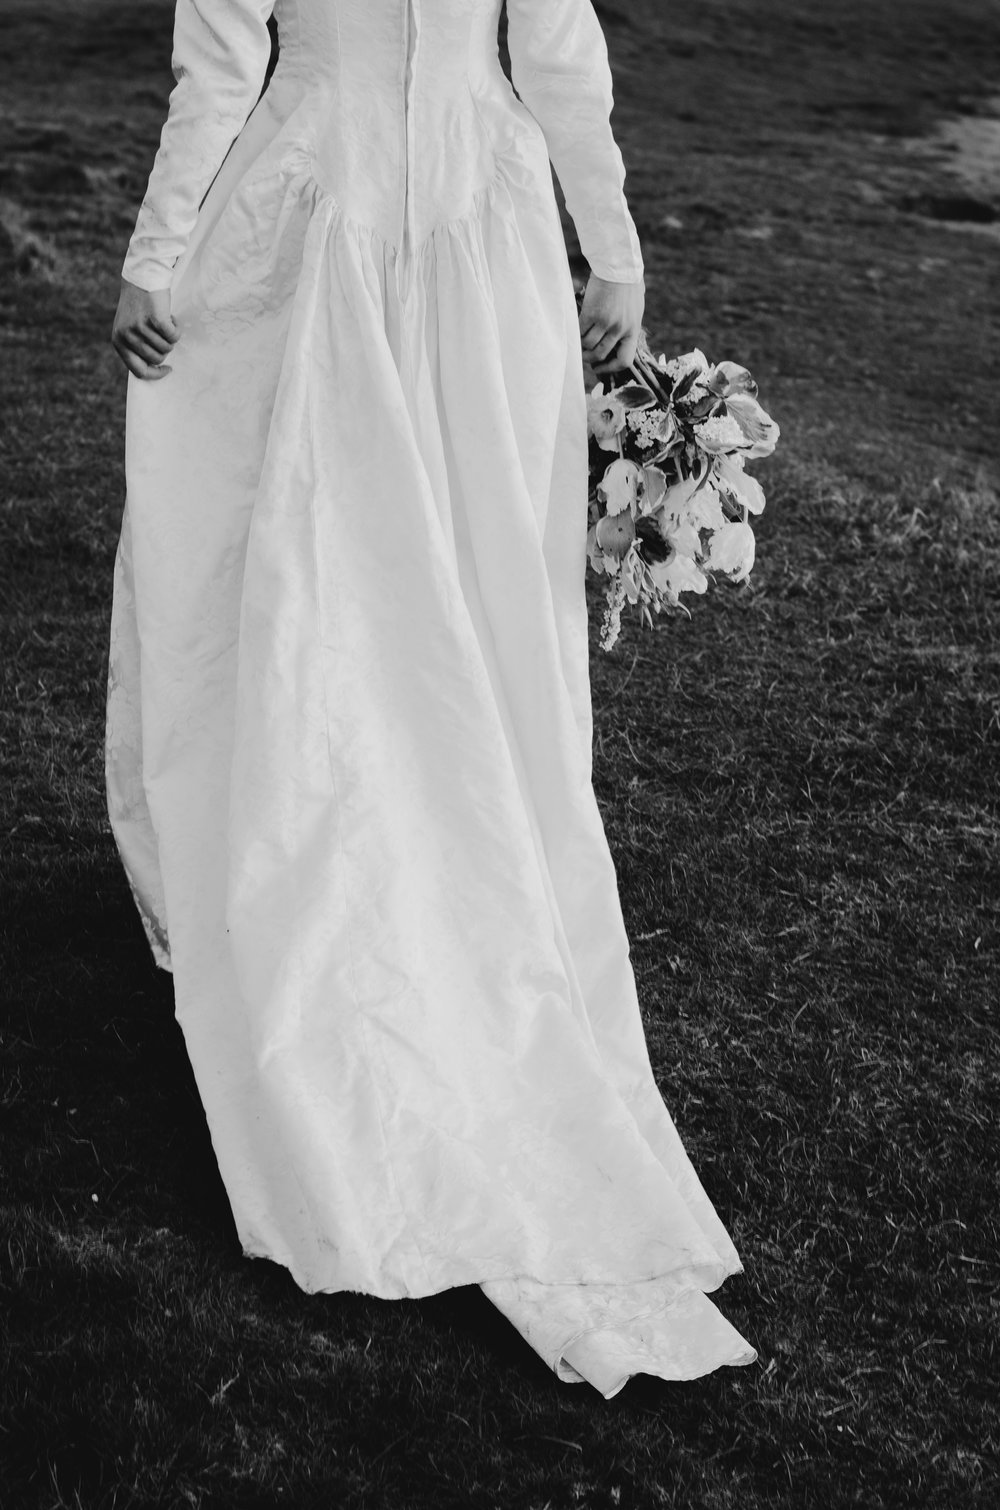 Bridal - Cuckmere Haven 2018 - Aiste Saulyte Photography-58.jpg